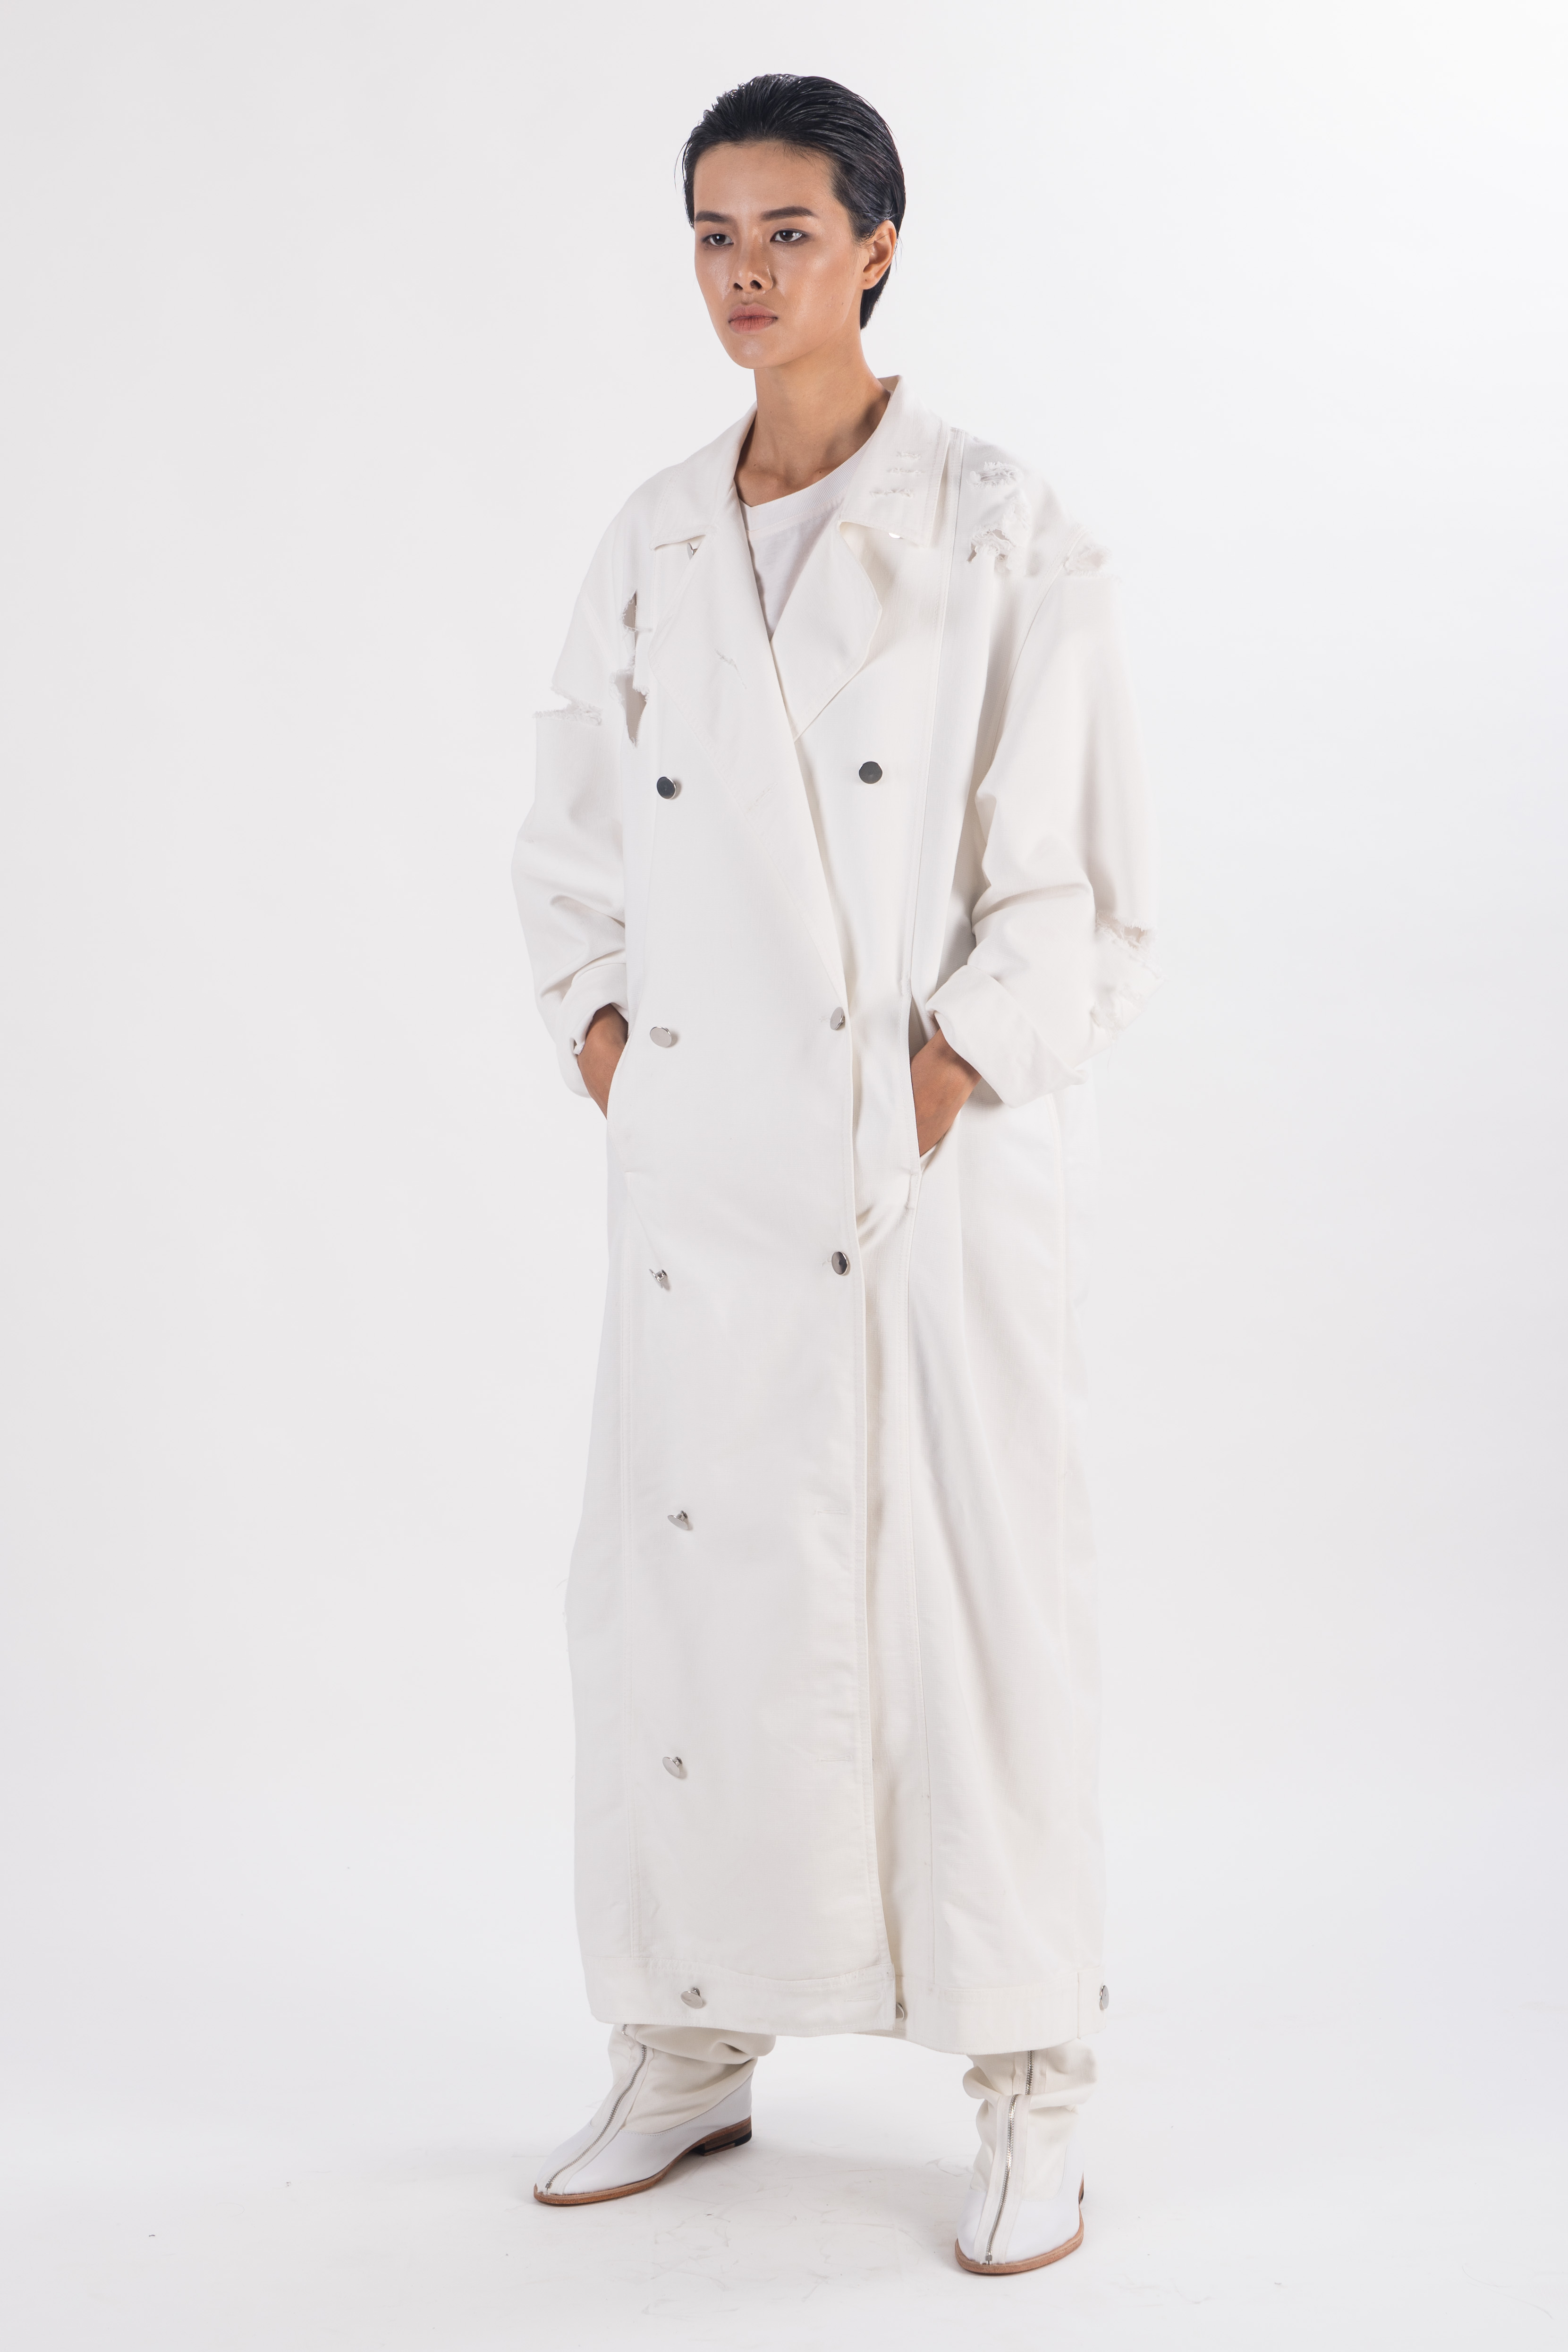 White  double breasted long heavy cotton coat with rips on shoulder and sleeves